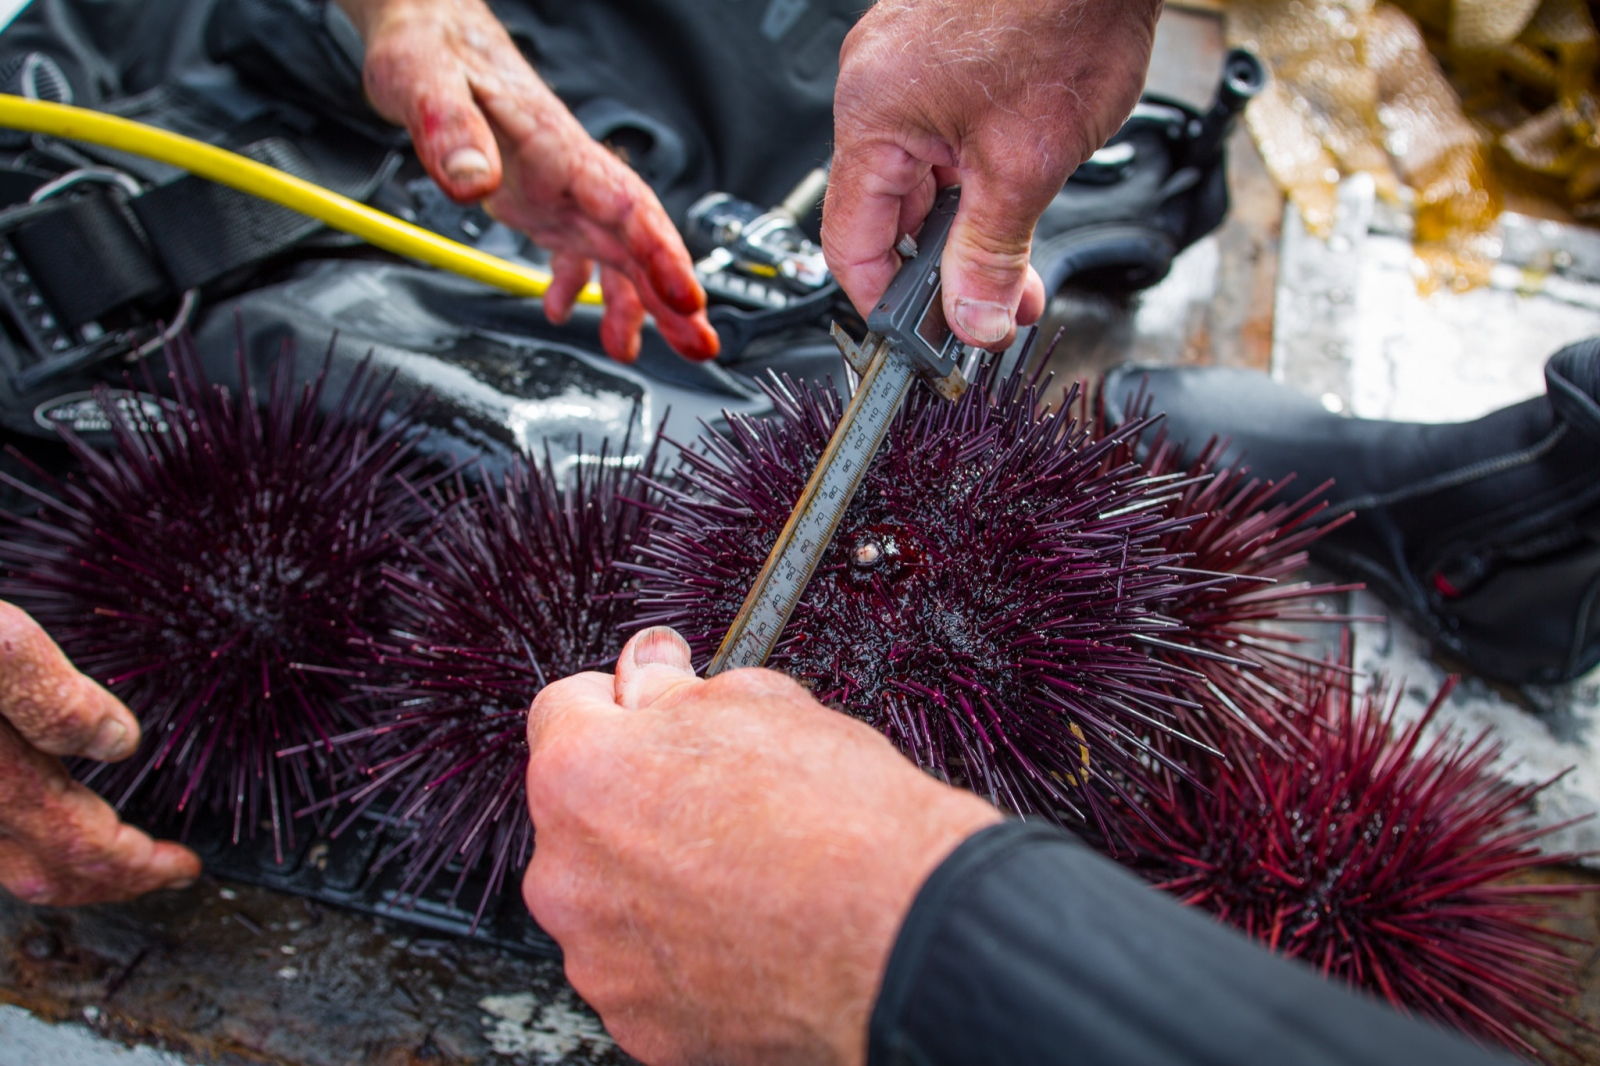 Sea urchin divers in San Diego voluntarily documenting their catch, gathering baseline population data in preparations for future regulations.From a personal project on new models in fisheries management.